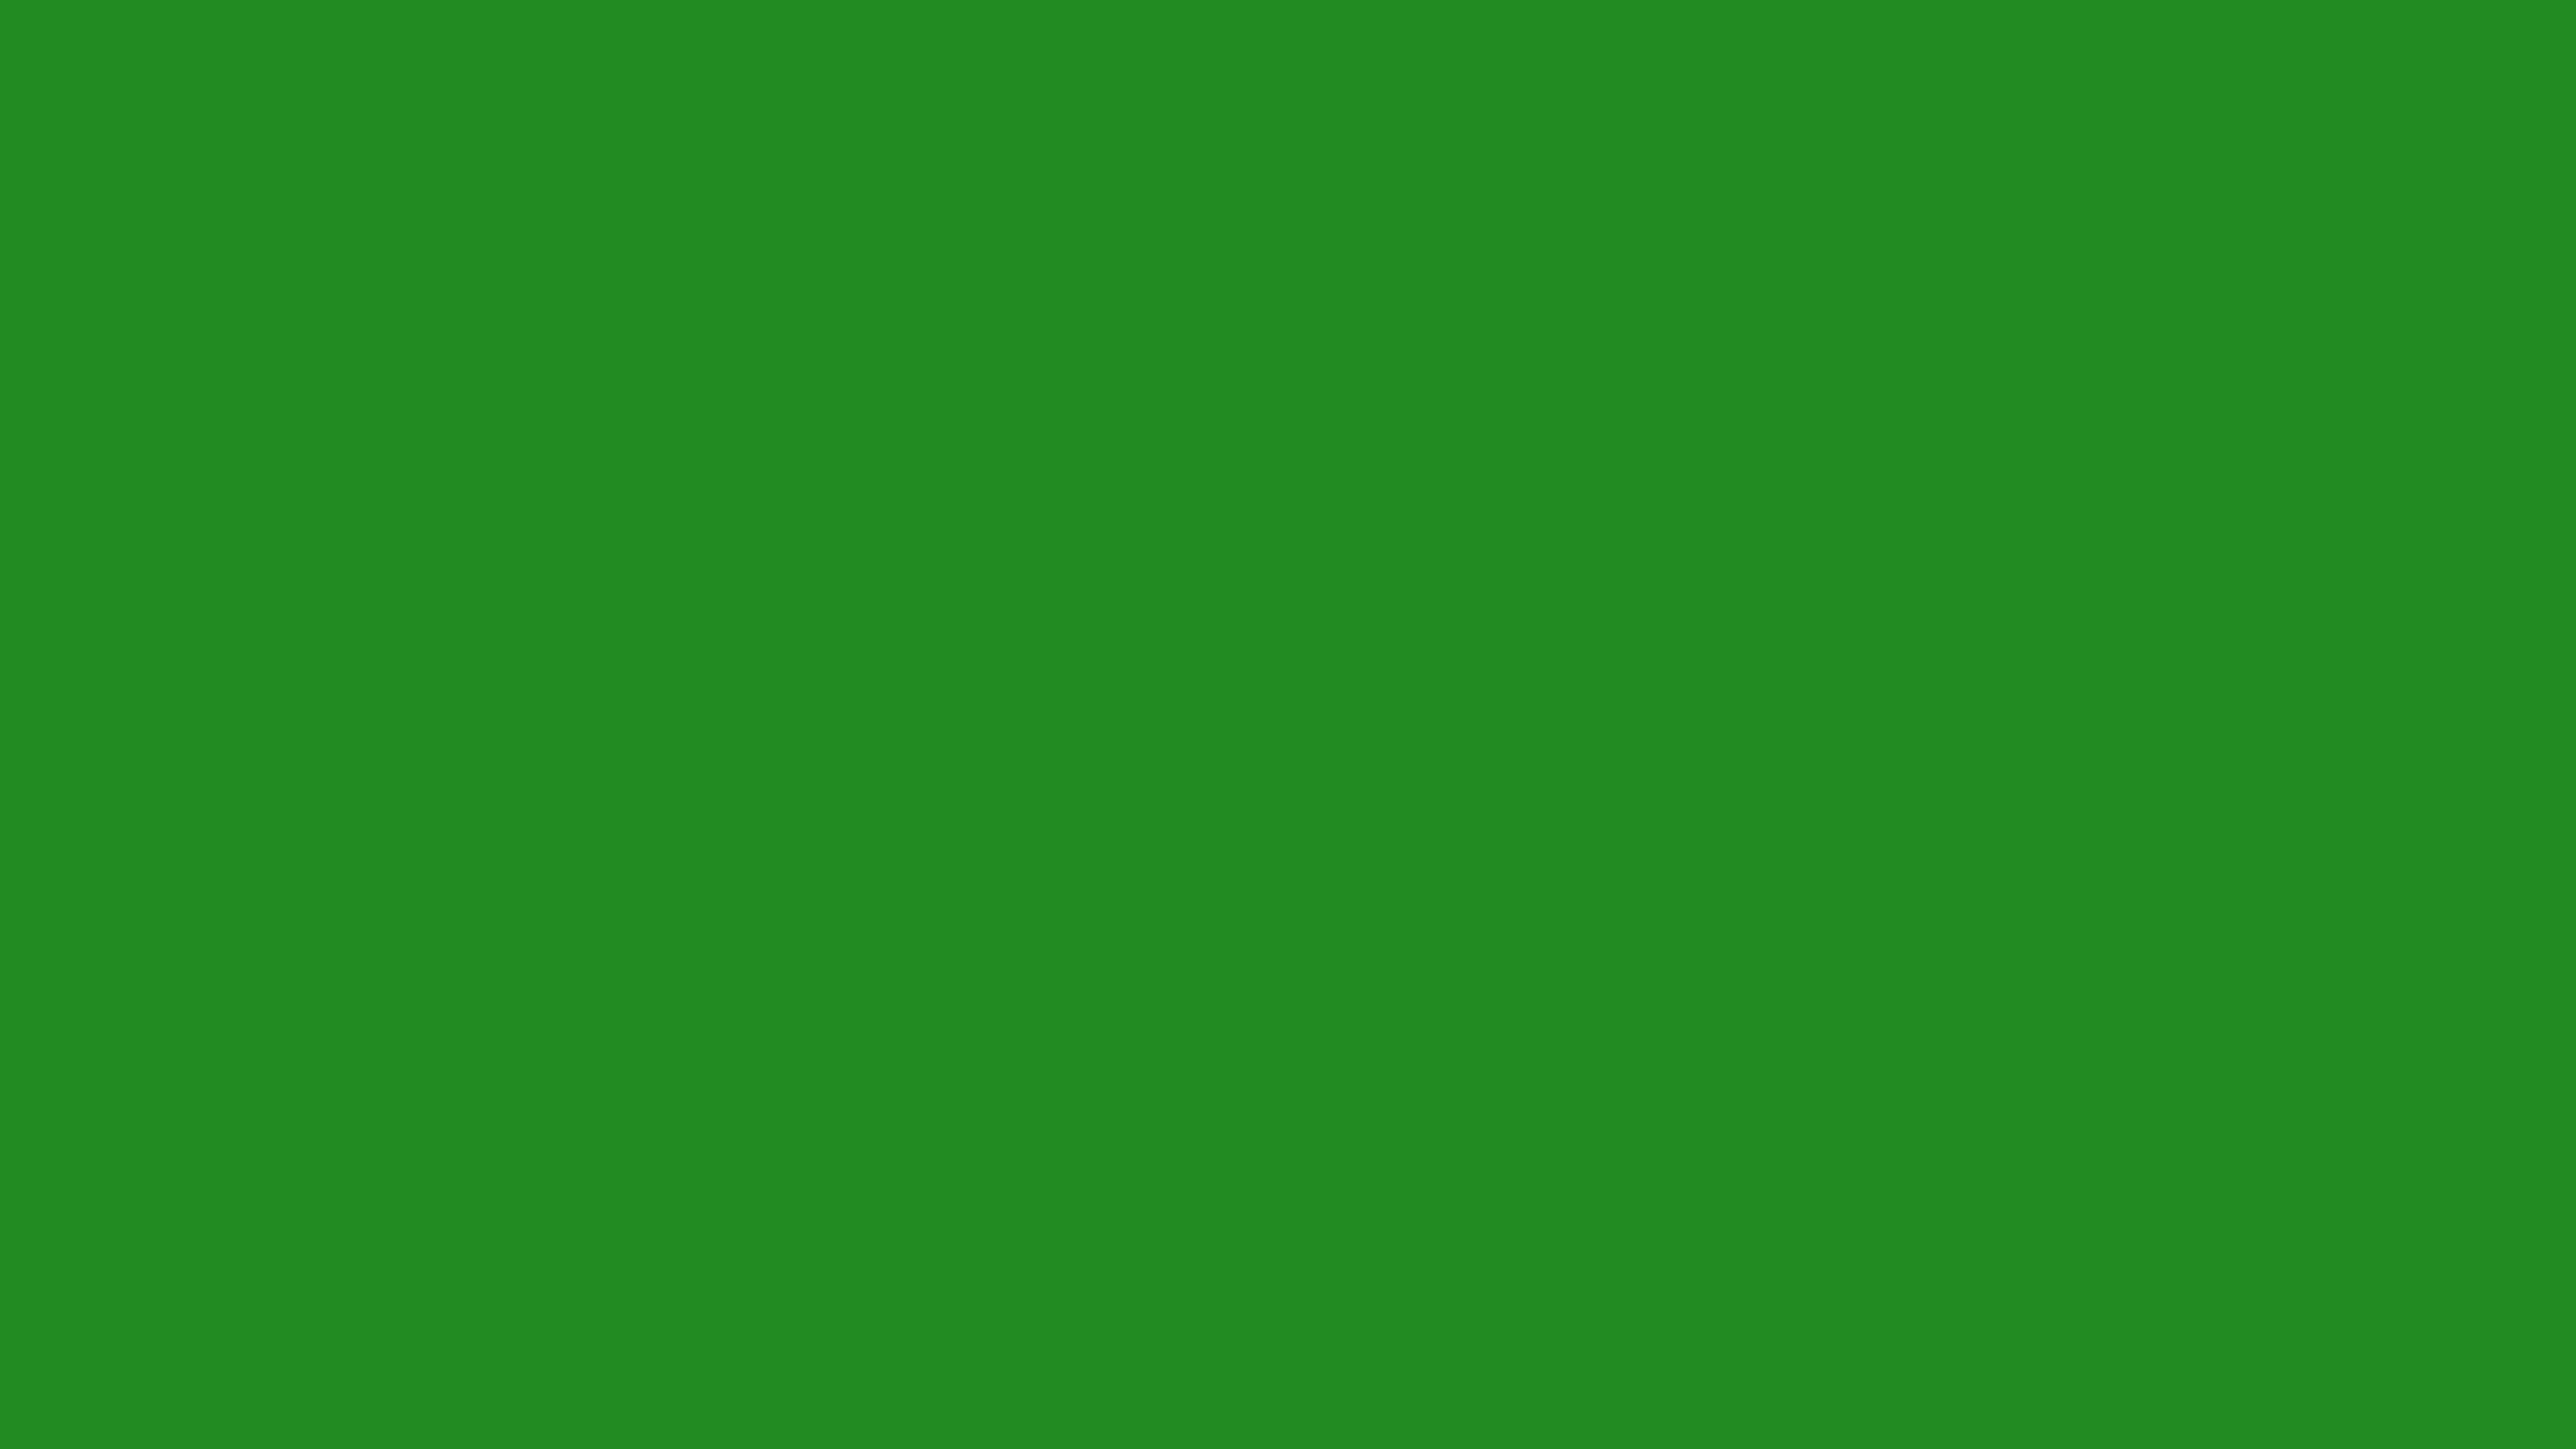 4096x2304 Forest Green For Web Solid Color Background